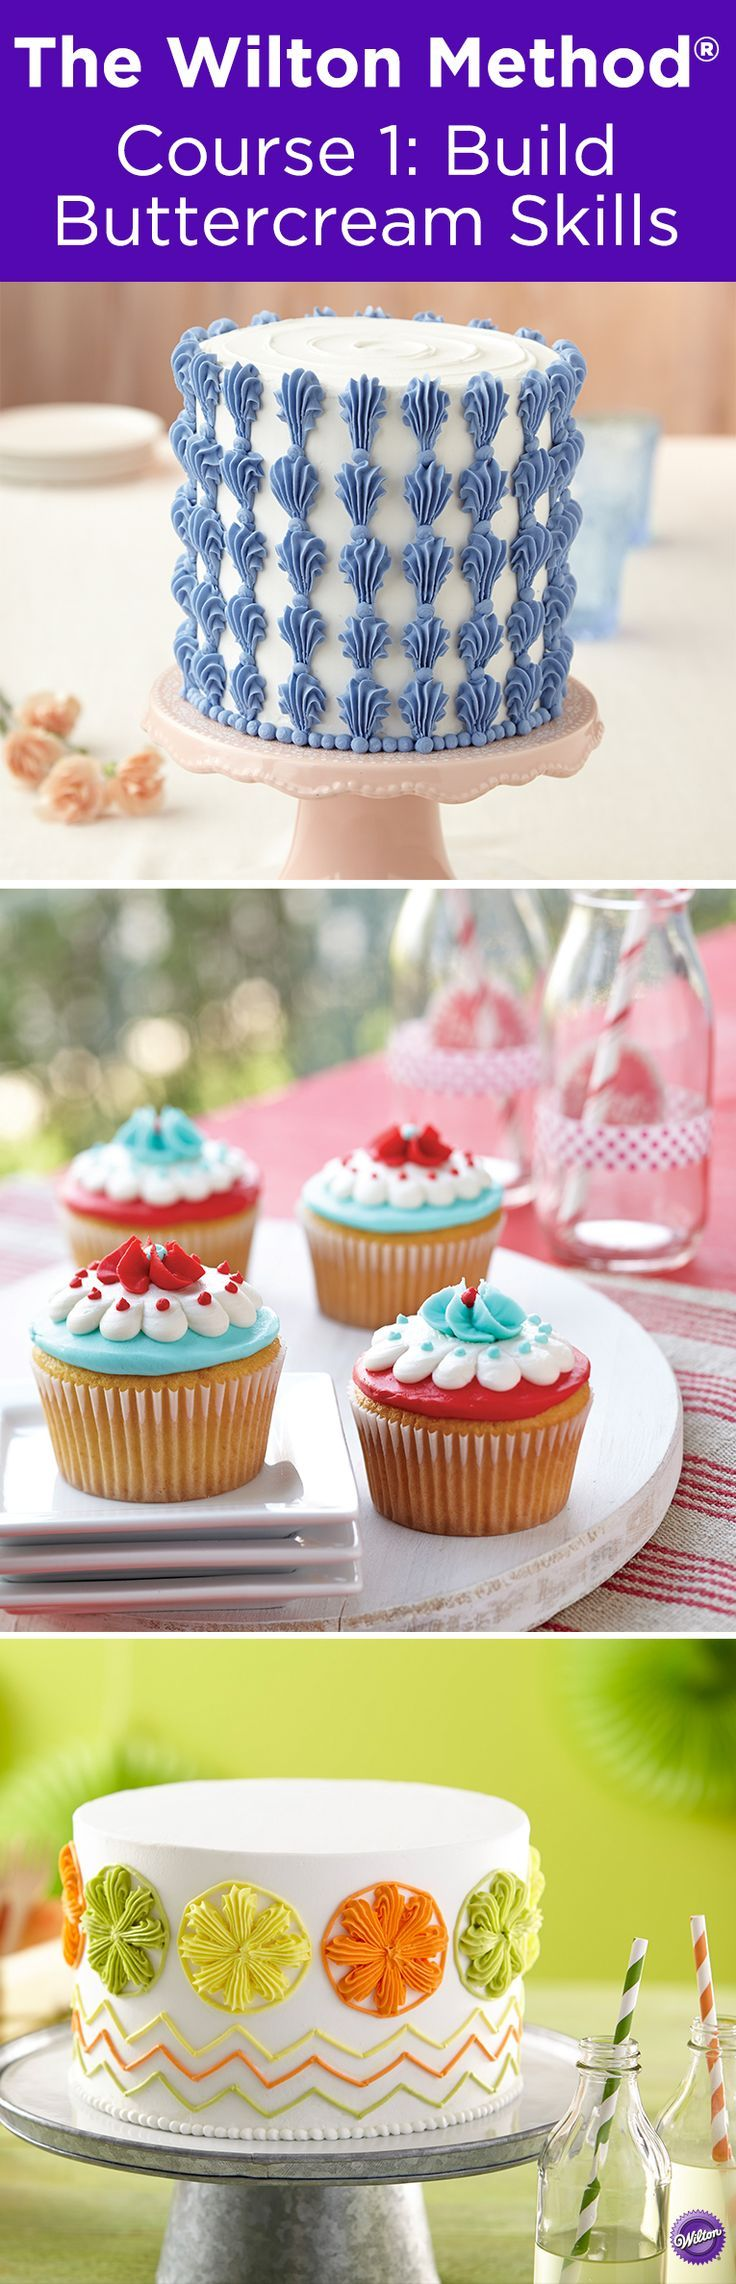 Basic Cake Decorating Techniques best 20+ buttercream decorating ideas on pinterest | piping